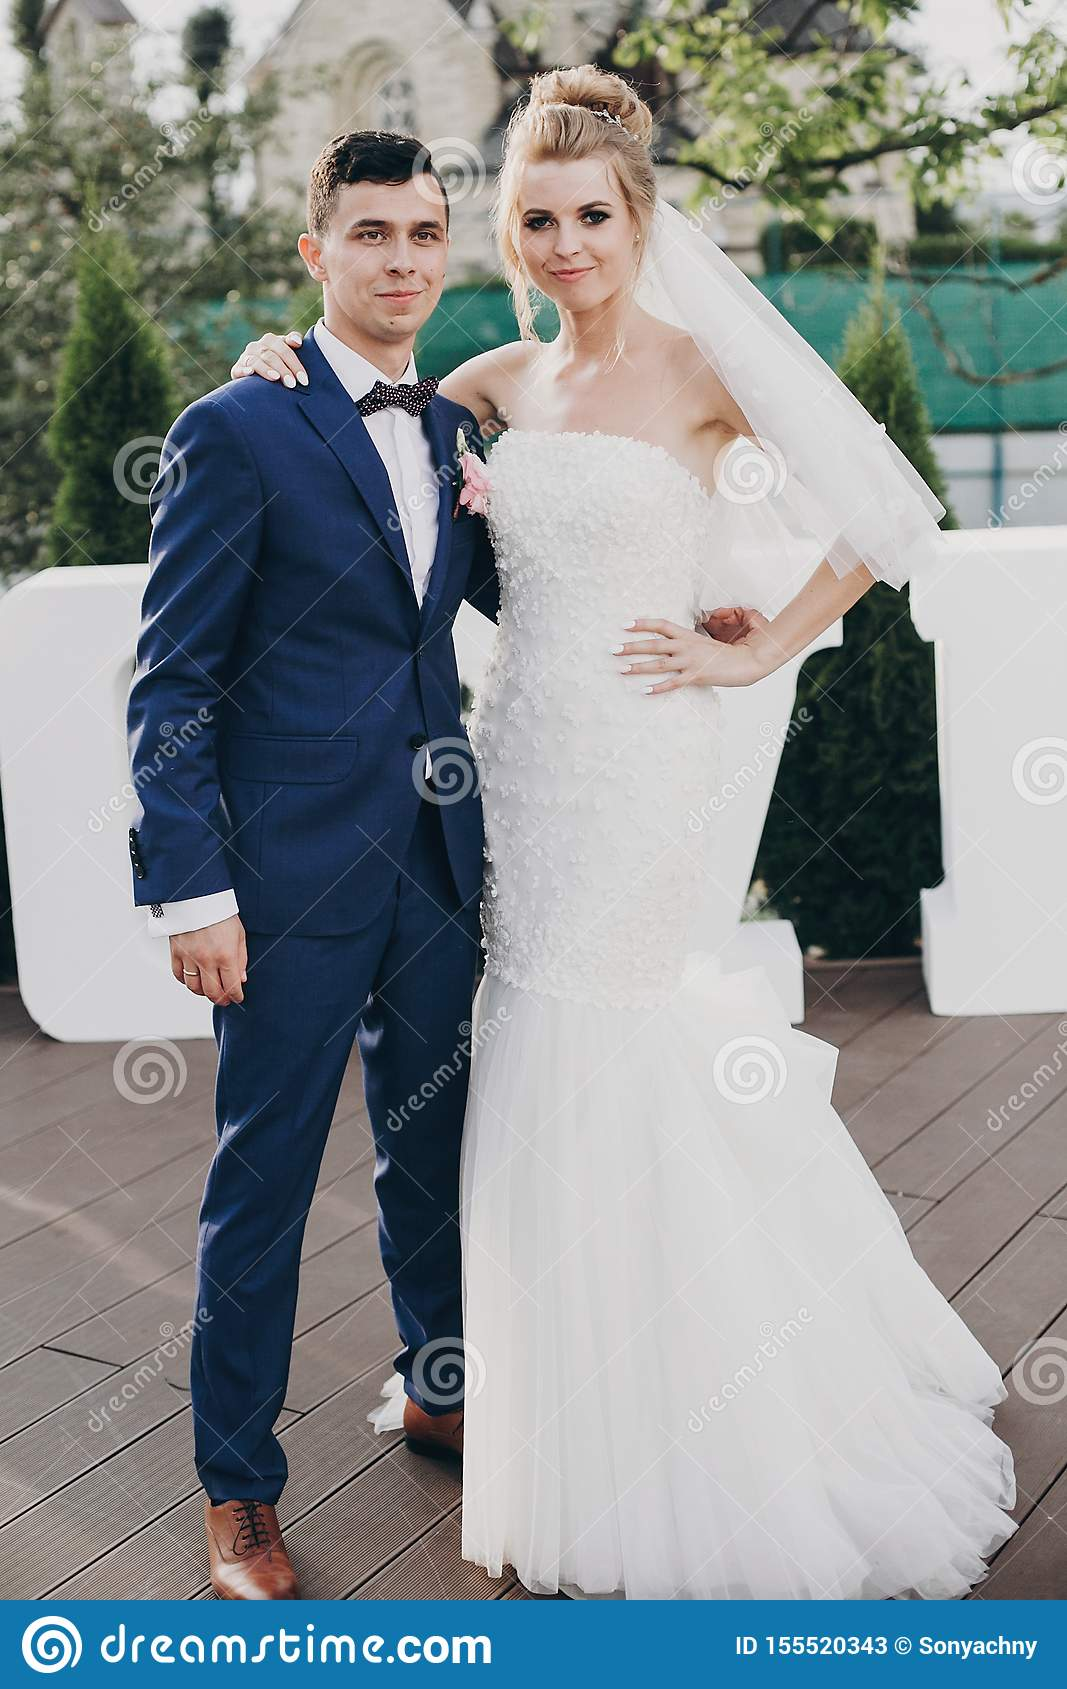 Stylish happy bride and groom posing at big love word in evening light at wedding reception outdoors. Gorgeous wedding couple of